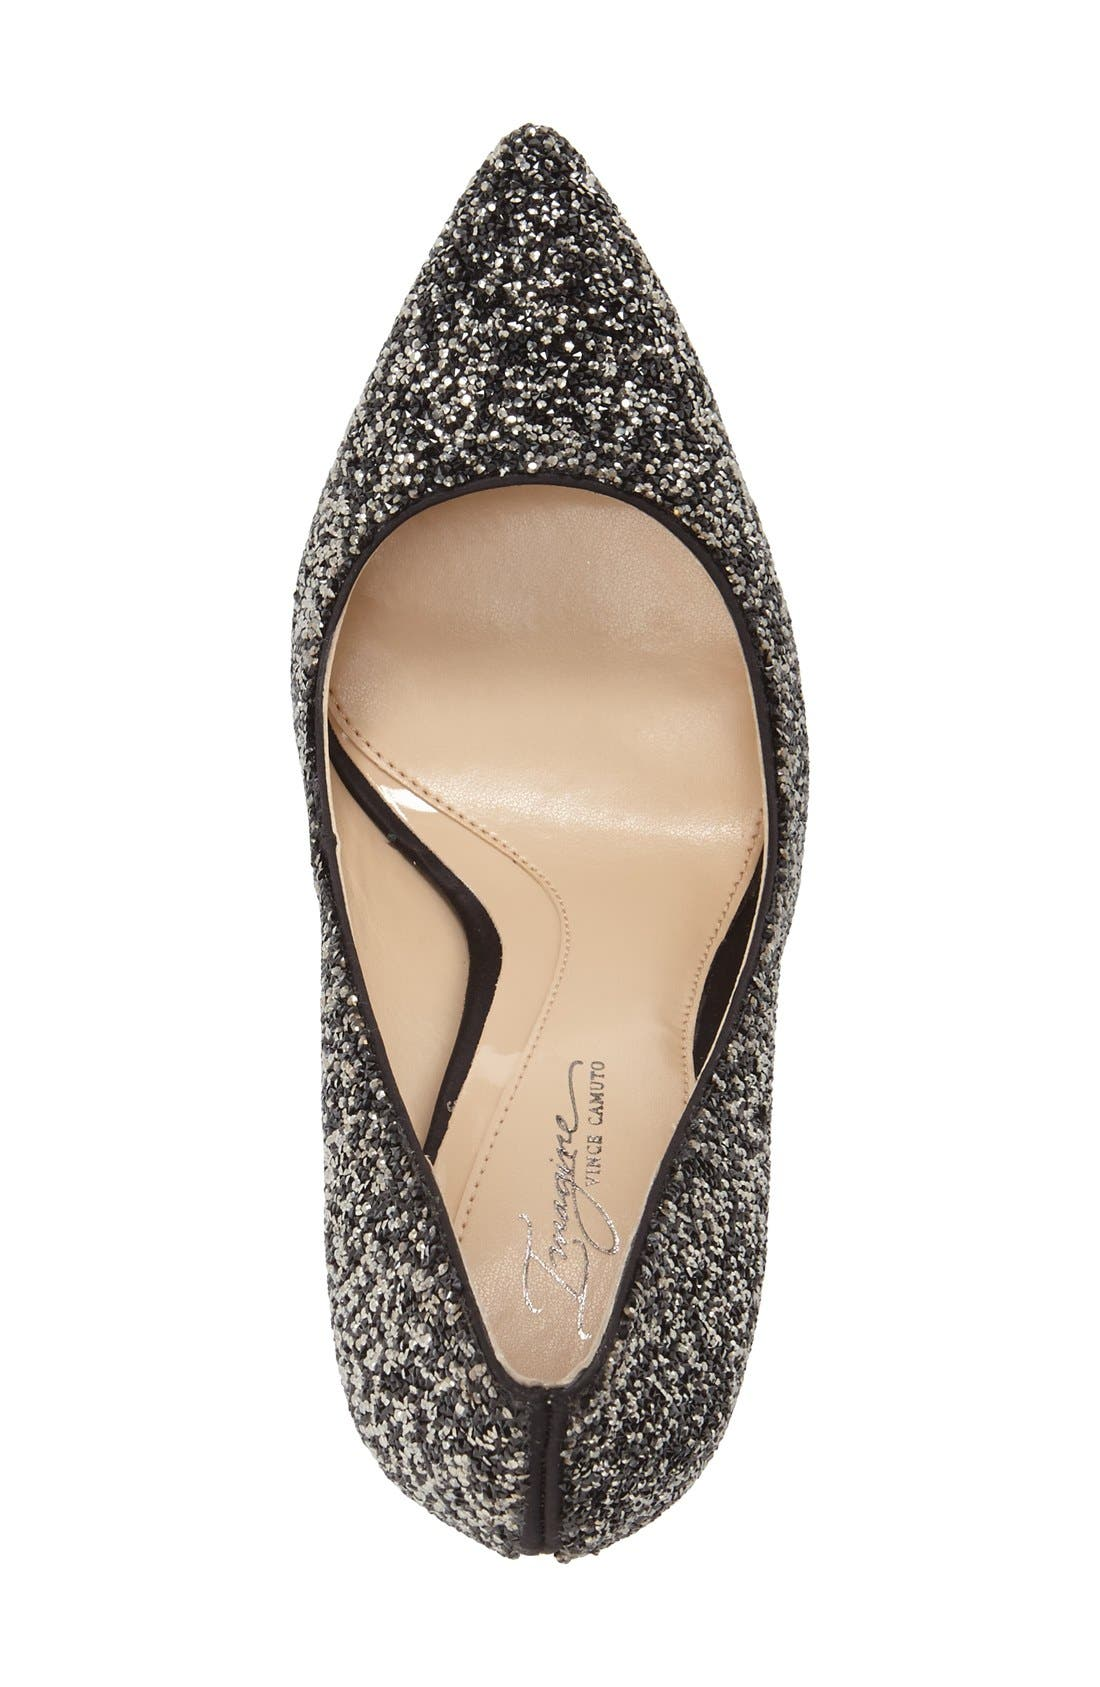 IMAGINE BY VINCE CAMUTO, 'Olson' Crystal Embellished Pump, Alternate thumbnail 3, color, 002